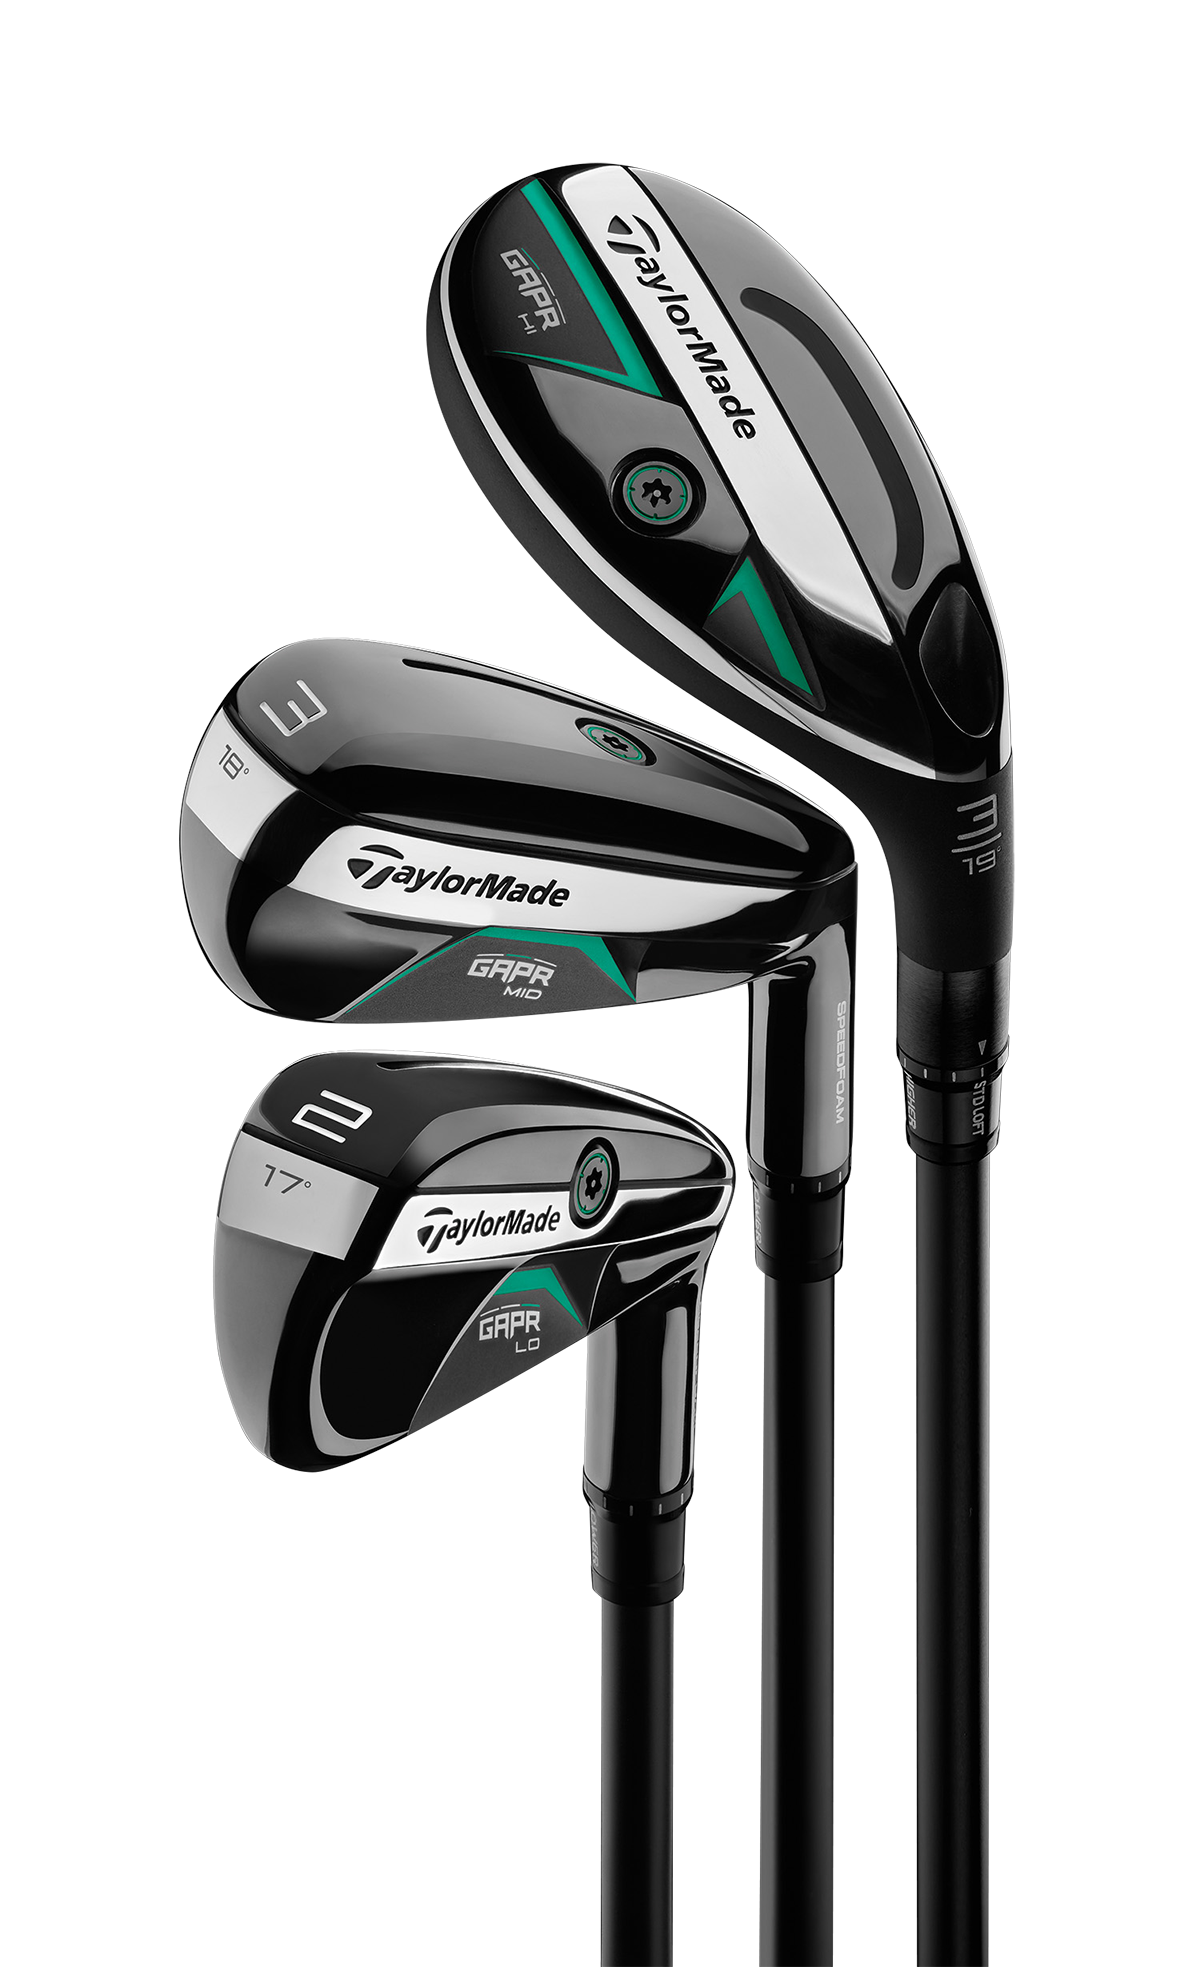 TaylorMade GAPR Hybrids - group of all three clubs